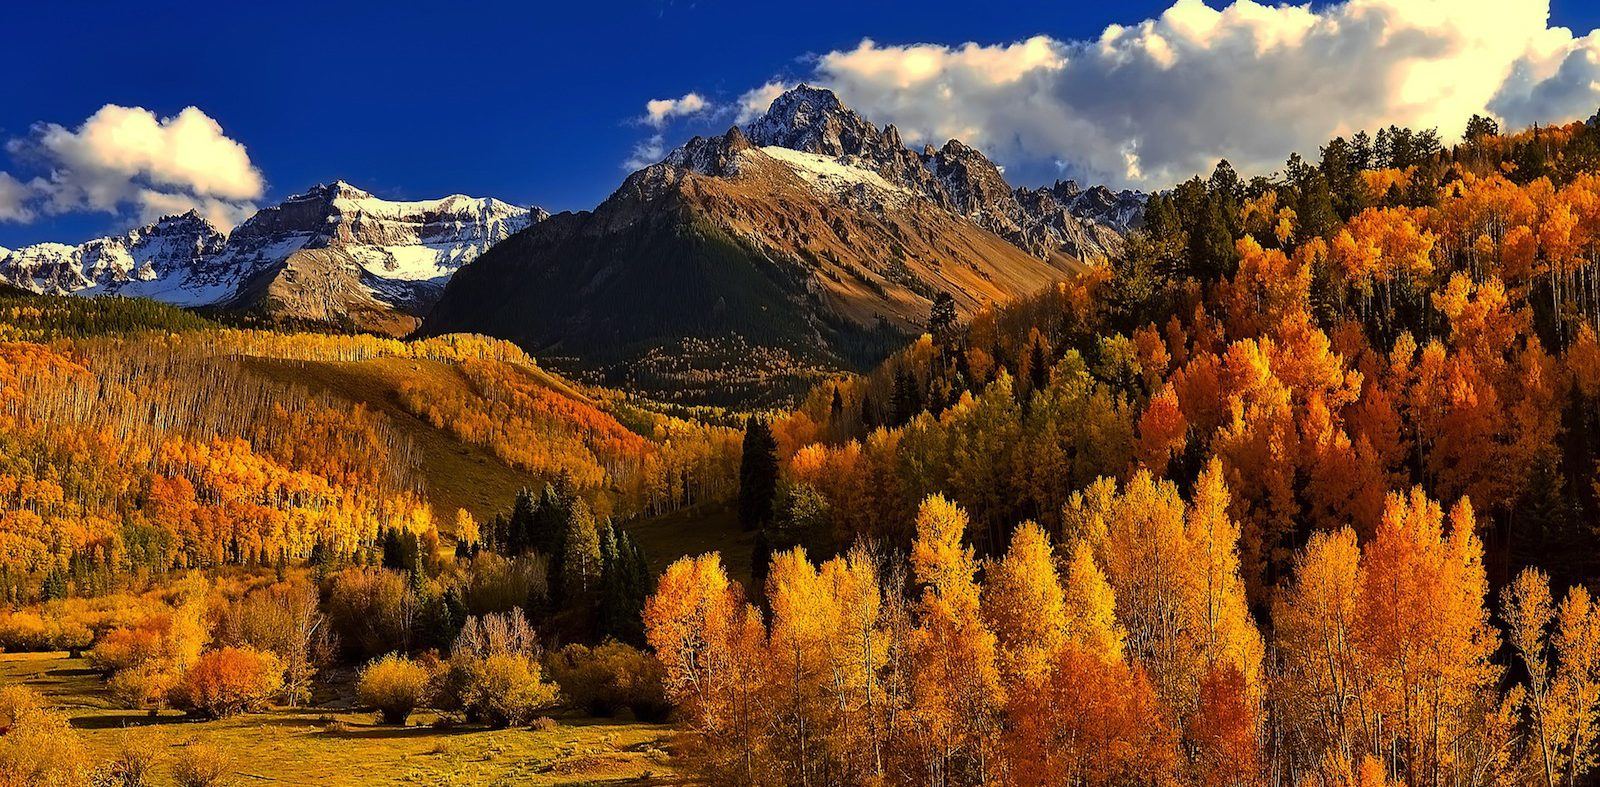 Top 5 national parks to visit in the fall